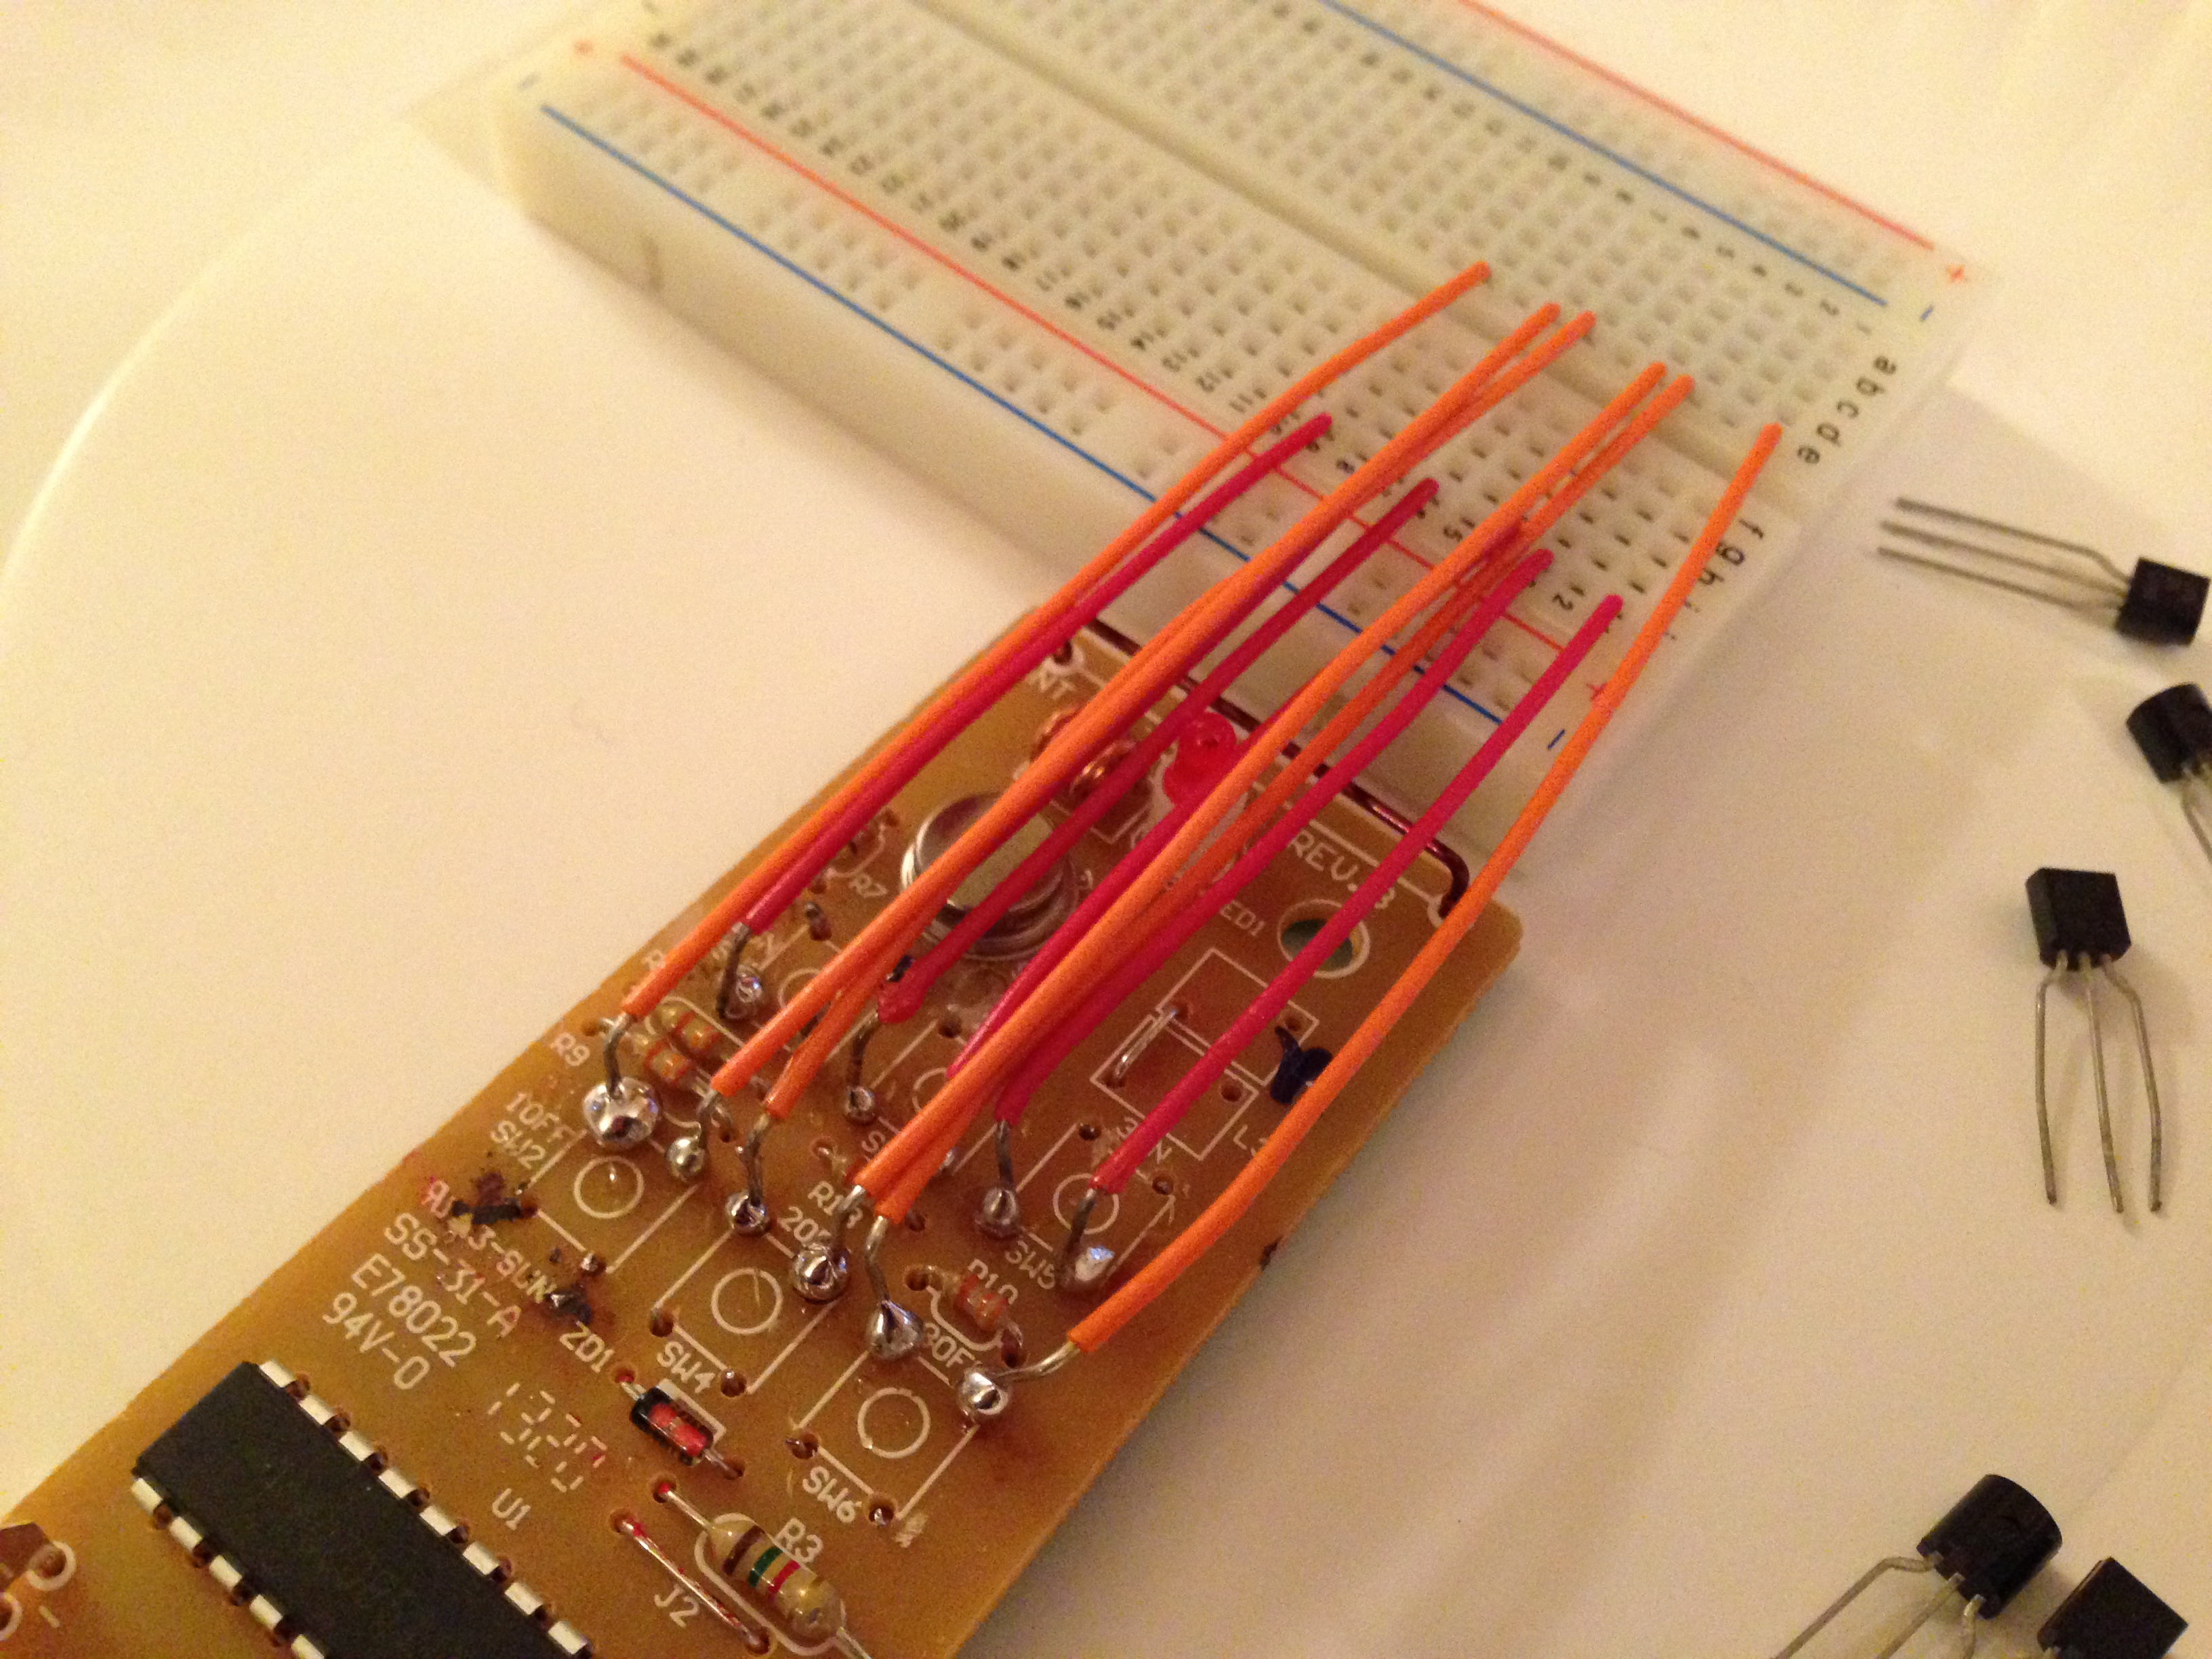 Soldered remote controller board